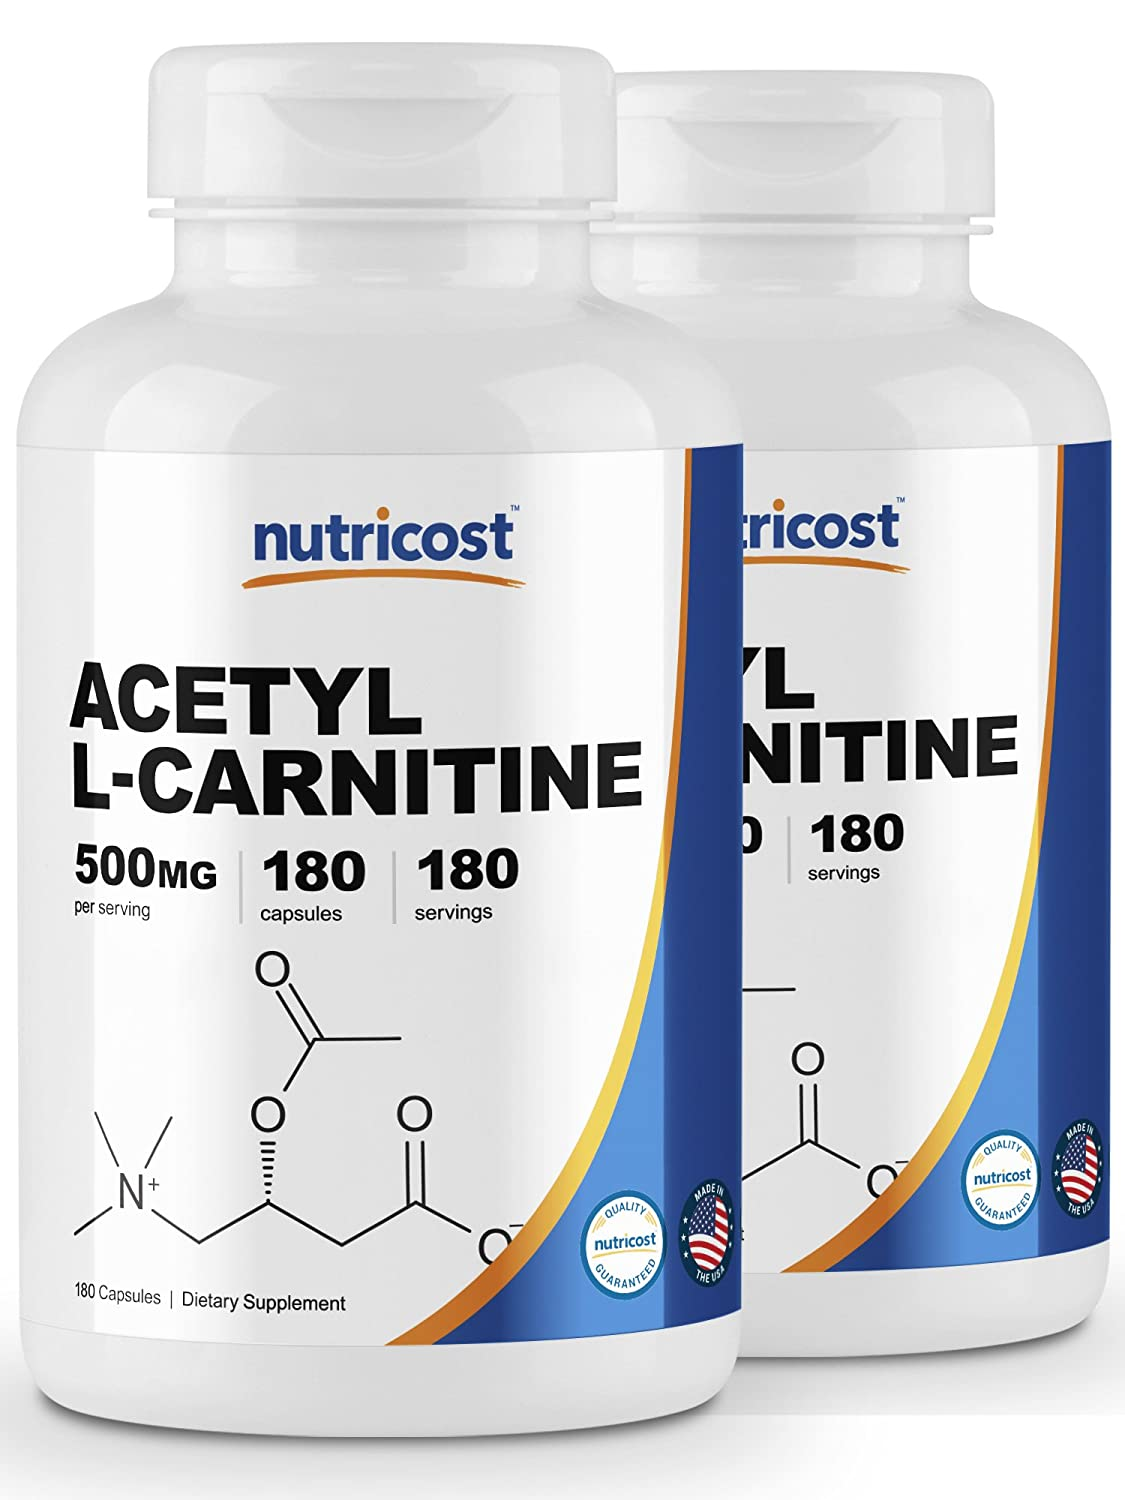 Nutricost Acetyl L-Carnitine 500mg, 180 Capsules 2 Bottles – Non-GMO and Gluten Free